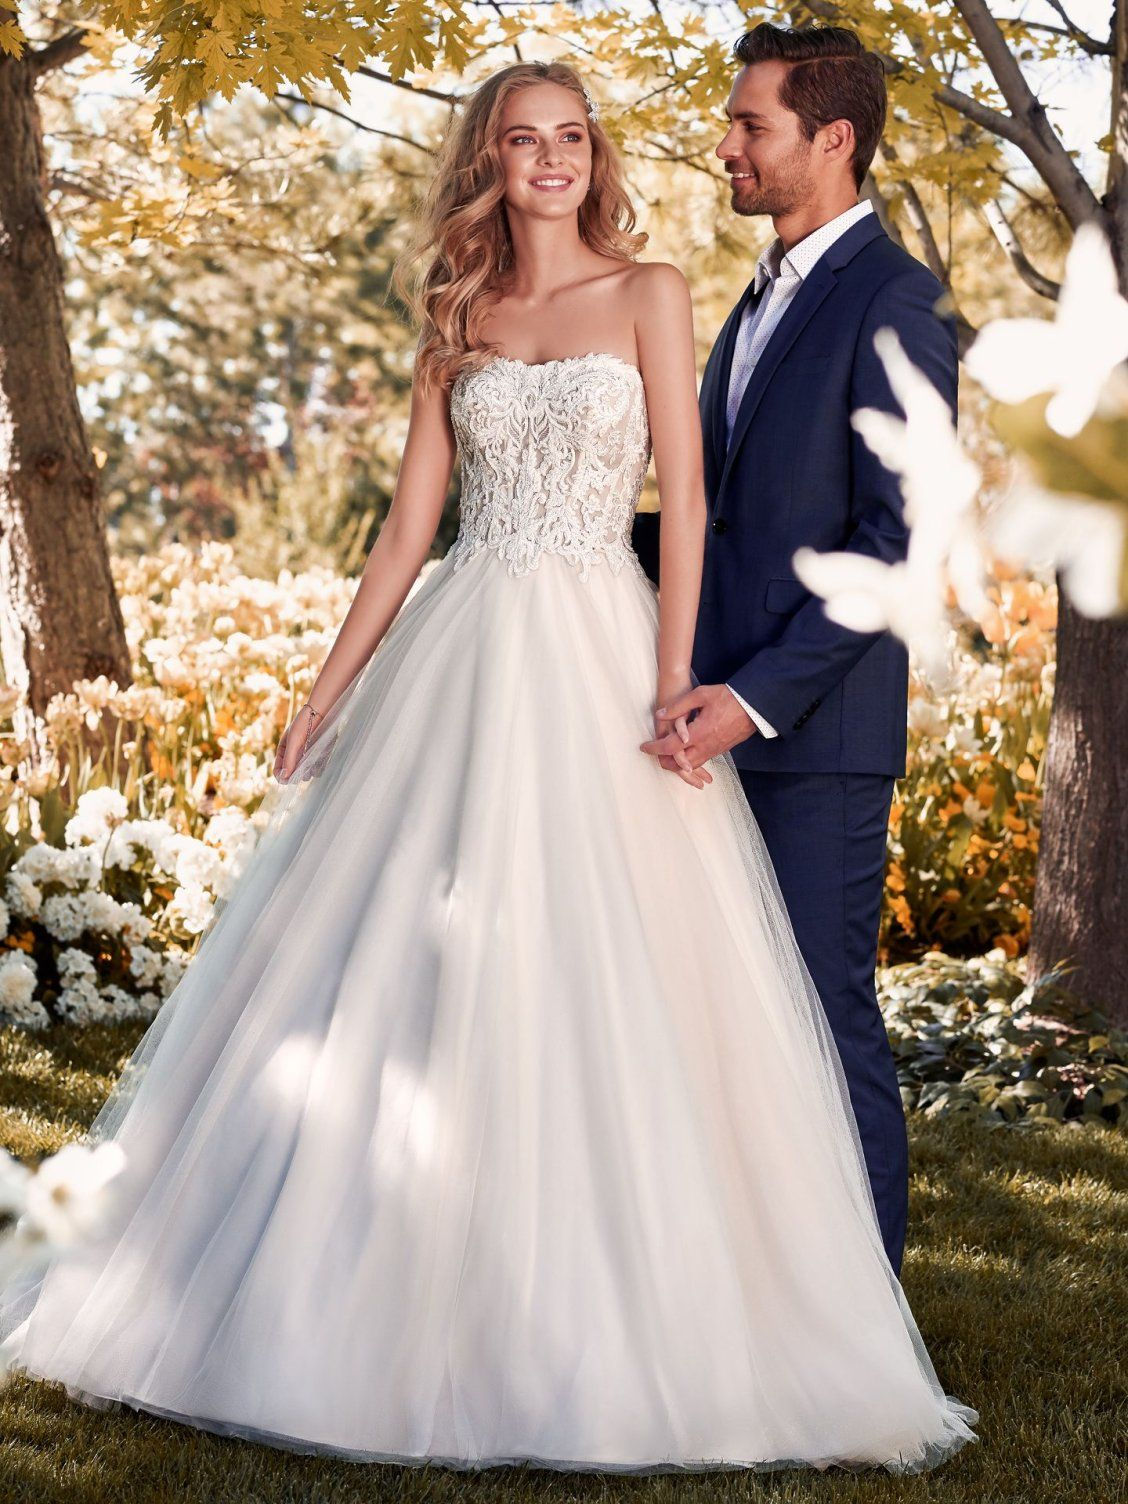 Princess Ball Gown Wedding Dresses For A Royal Affair Wedding Dresses Wedding Gown Preservation Ball Gowns Wedding